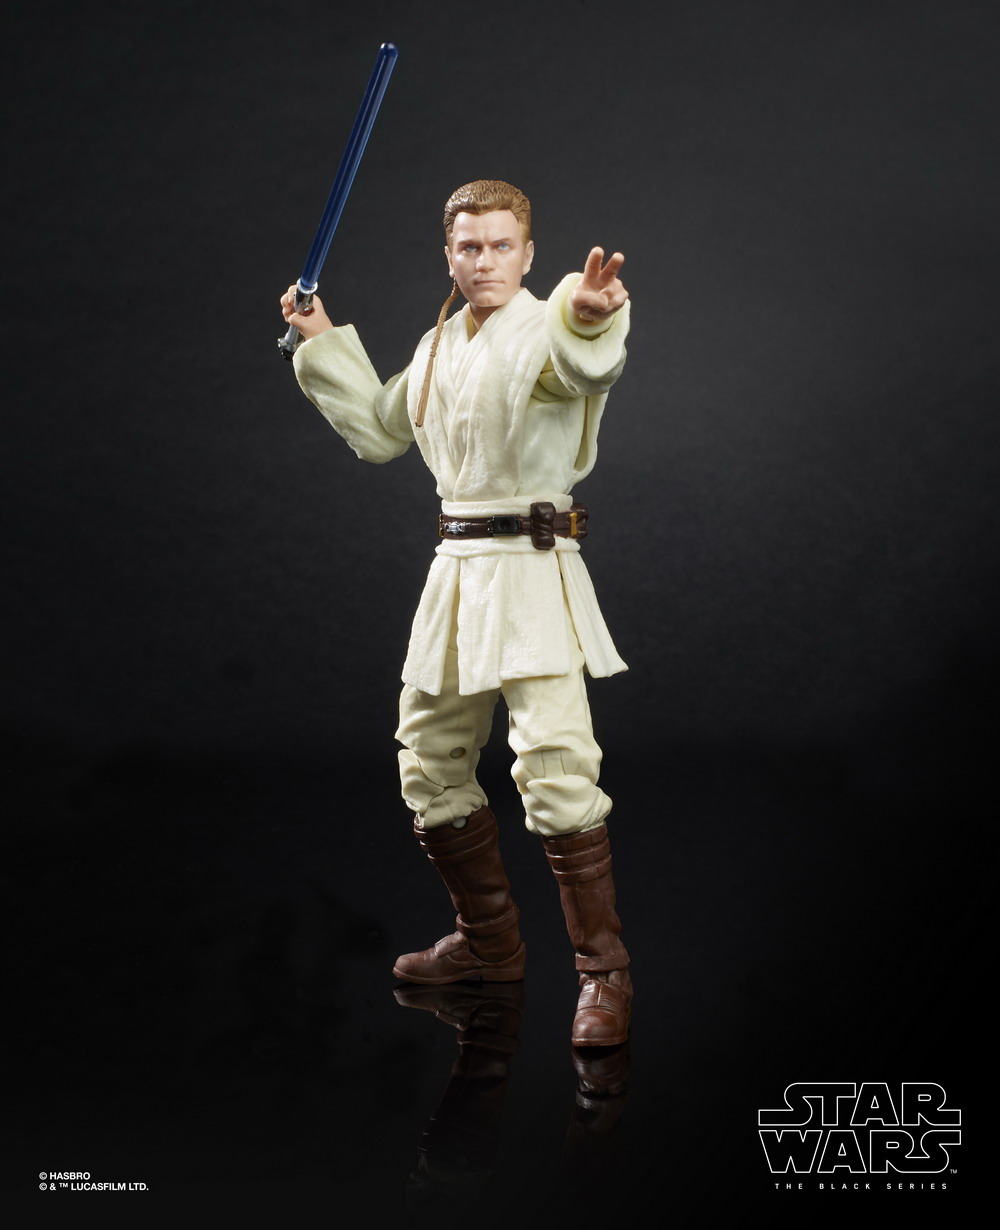 STAR WARS THE BLACK SERIES 6-INCH Figure Assortment - Obi-Wan Kenobi (oop 1)